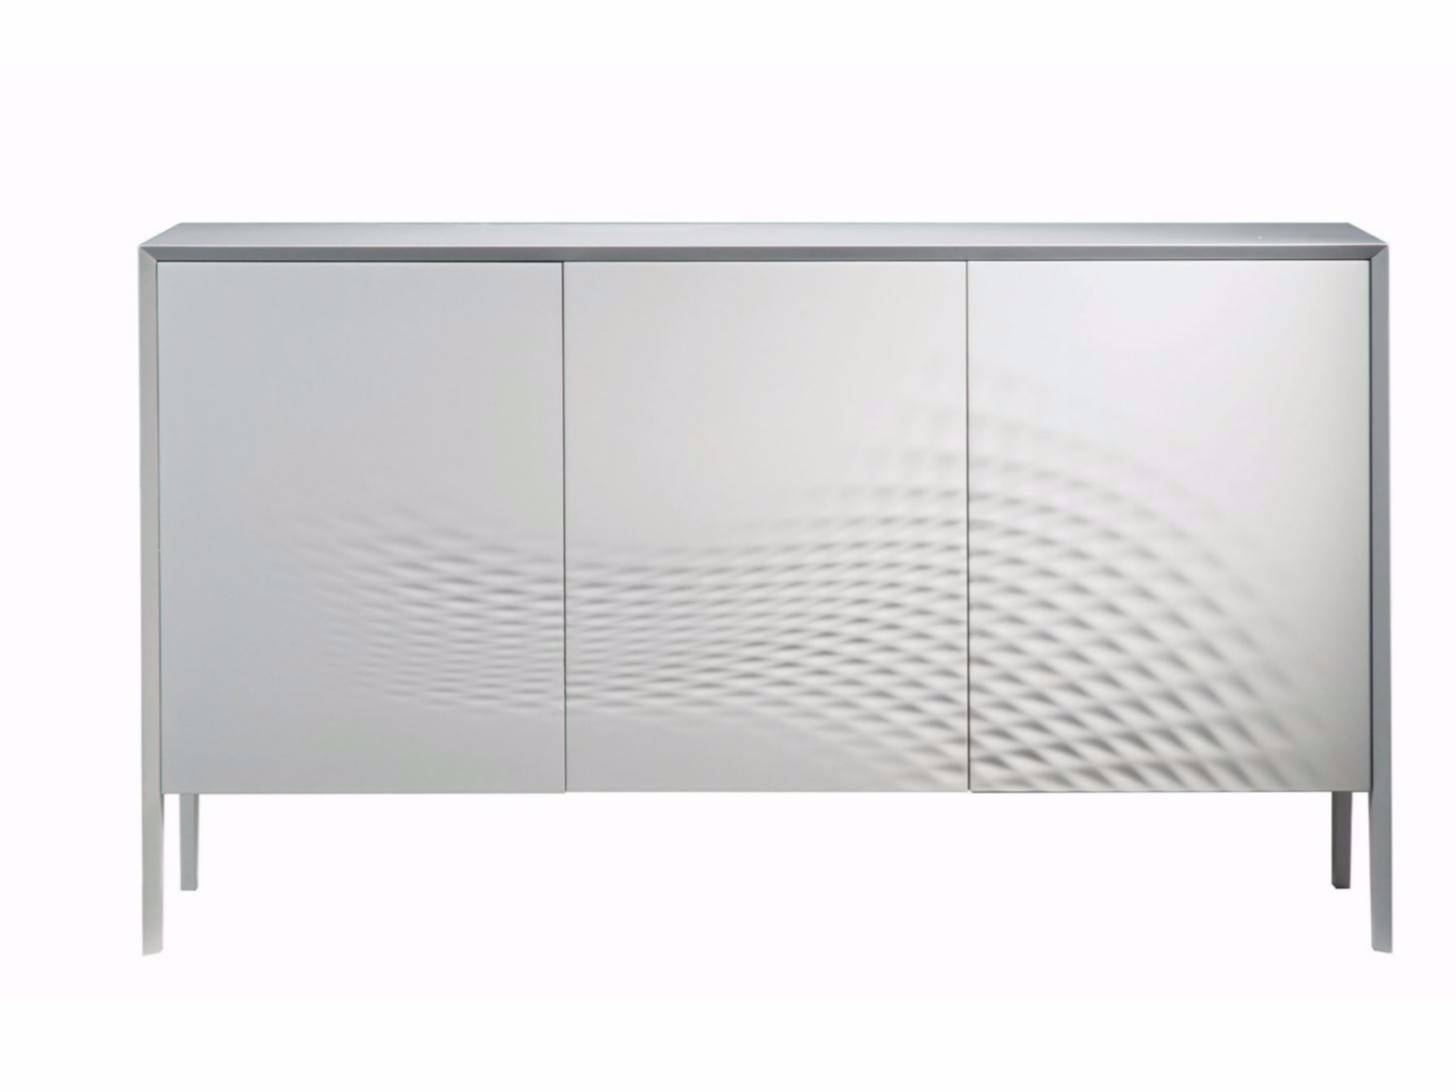 Rosace | Sideboard Les Contemporains Collectionroche Bobois Inside Latest Roche Bobois Sideboards (#11 of 15)